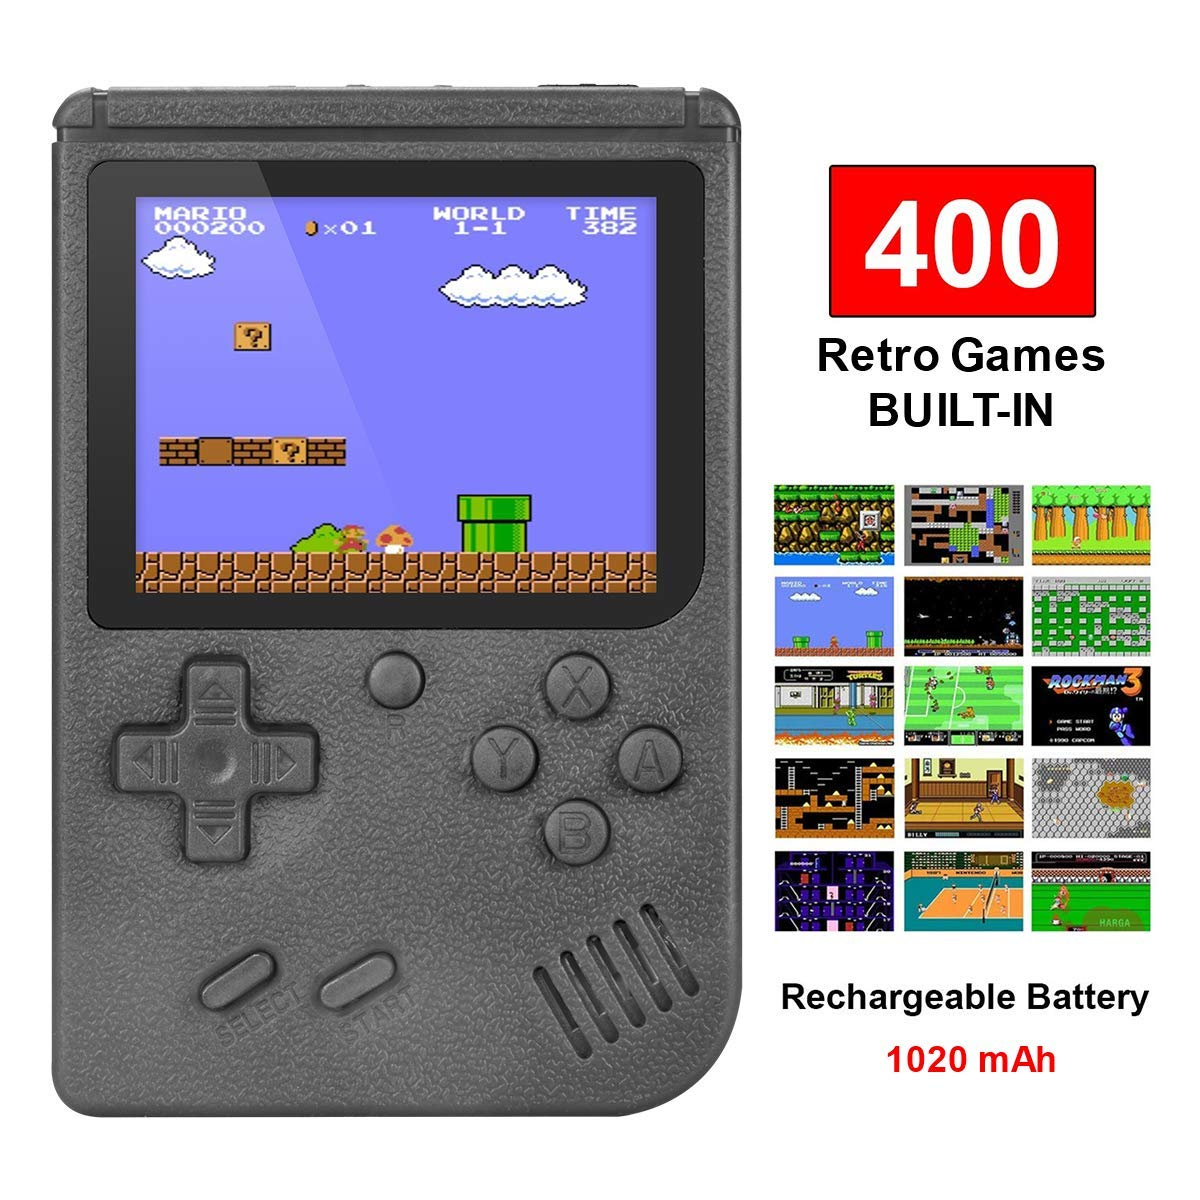 TAPDRA Handheld Game Machine, Retro Game with 400 Classic Games 3.0 inch Screen Portable Game Controller, Good Gifts for Kids by TAPDRA